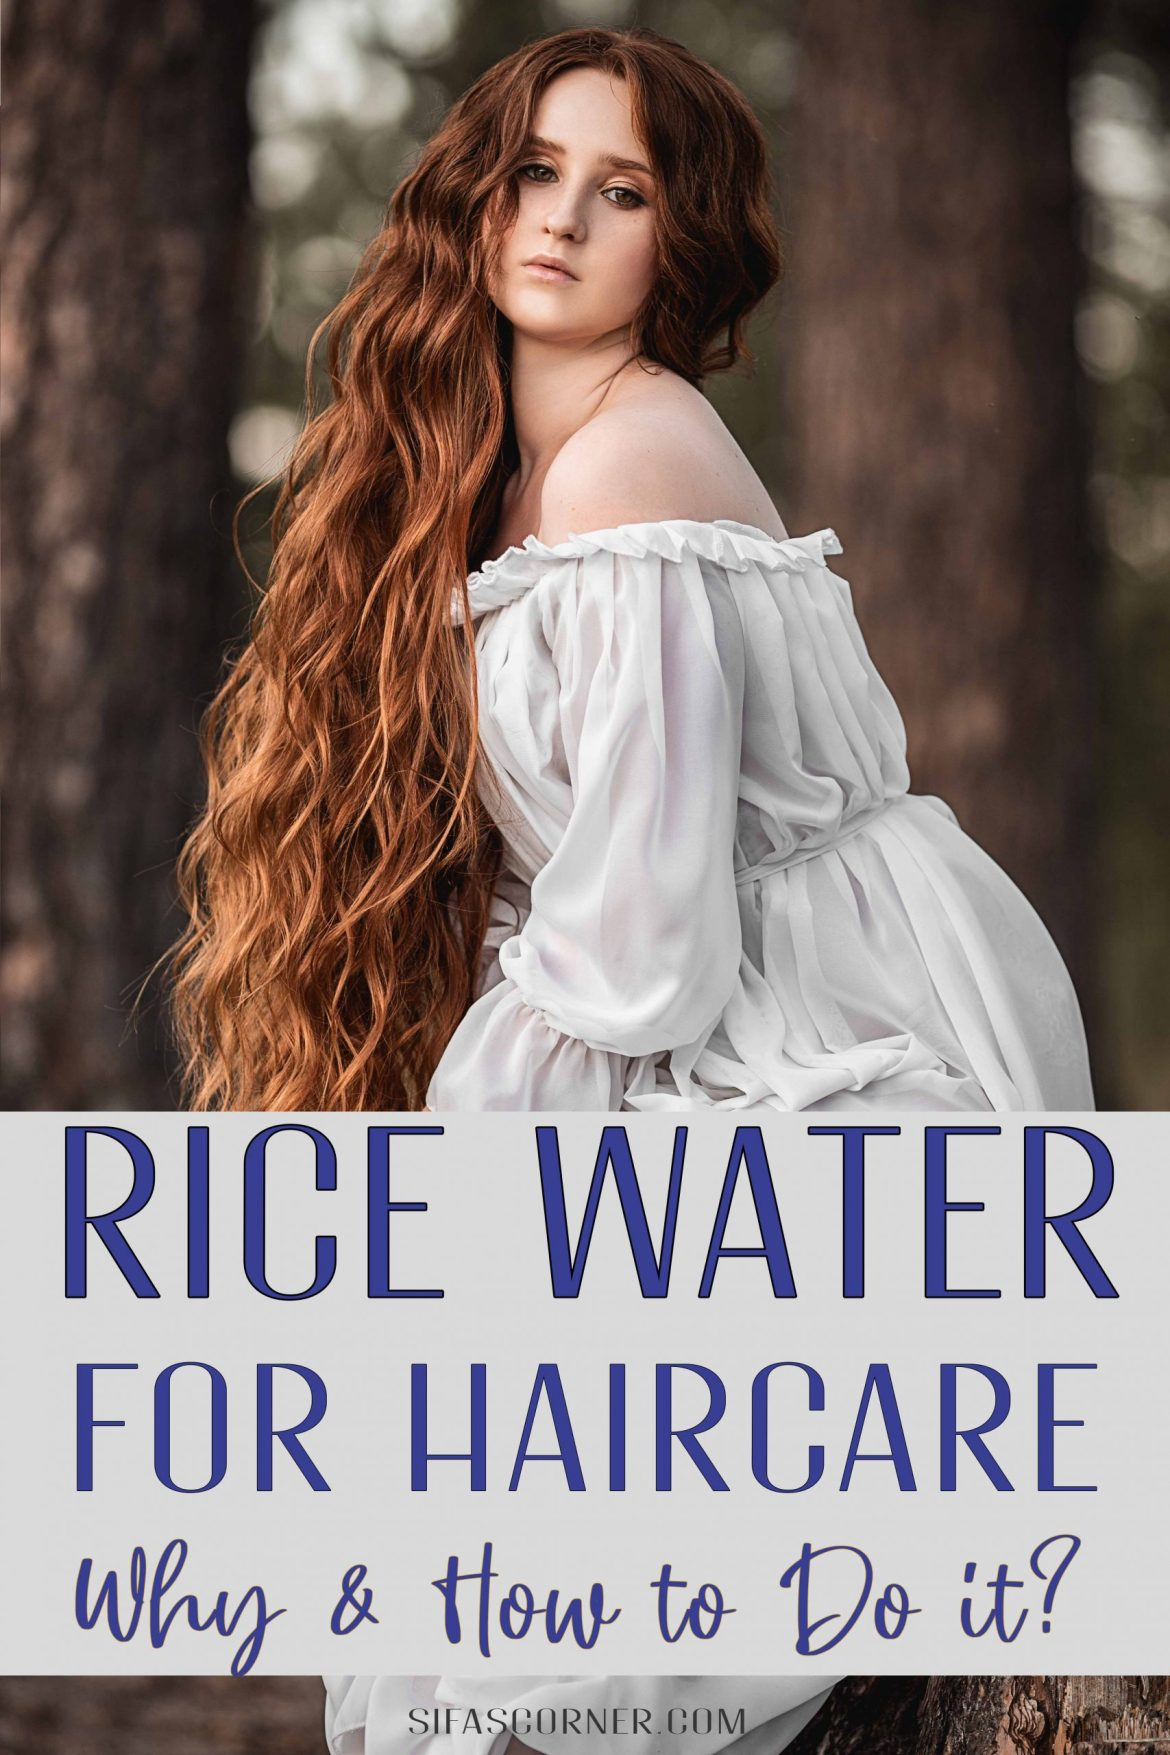 Rice Water for Haircare